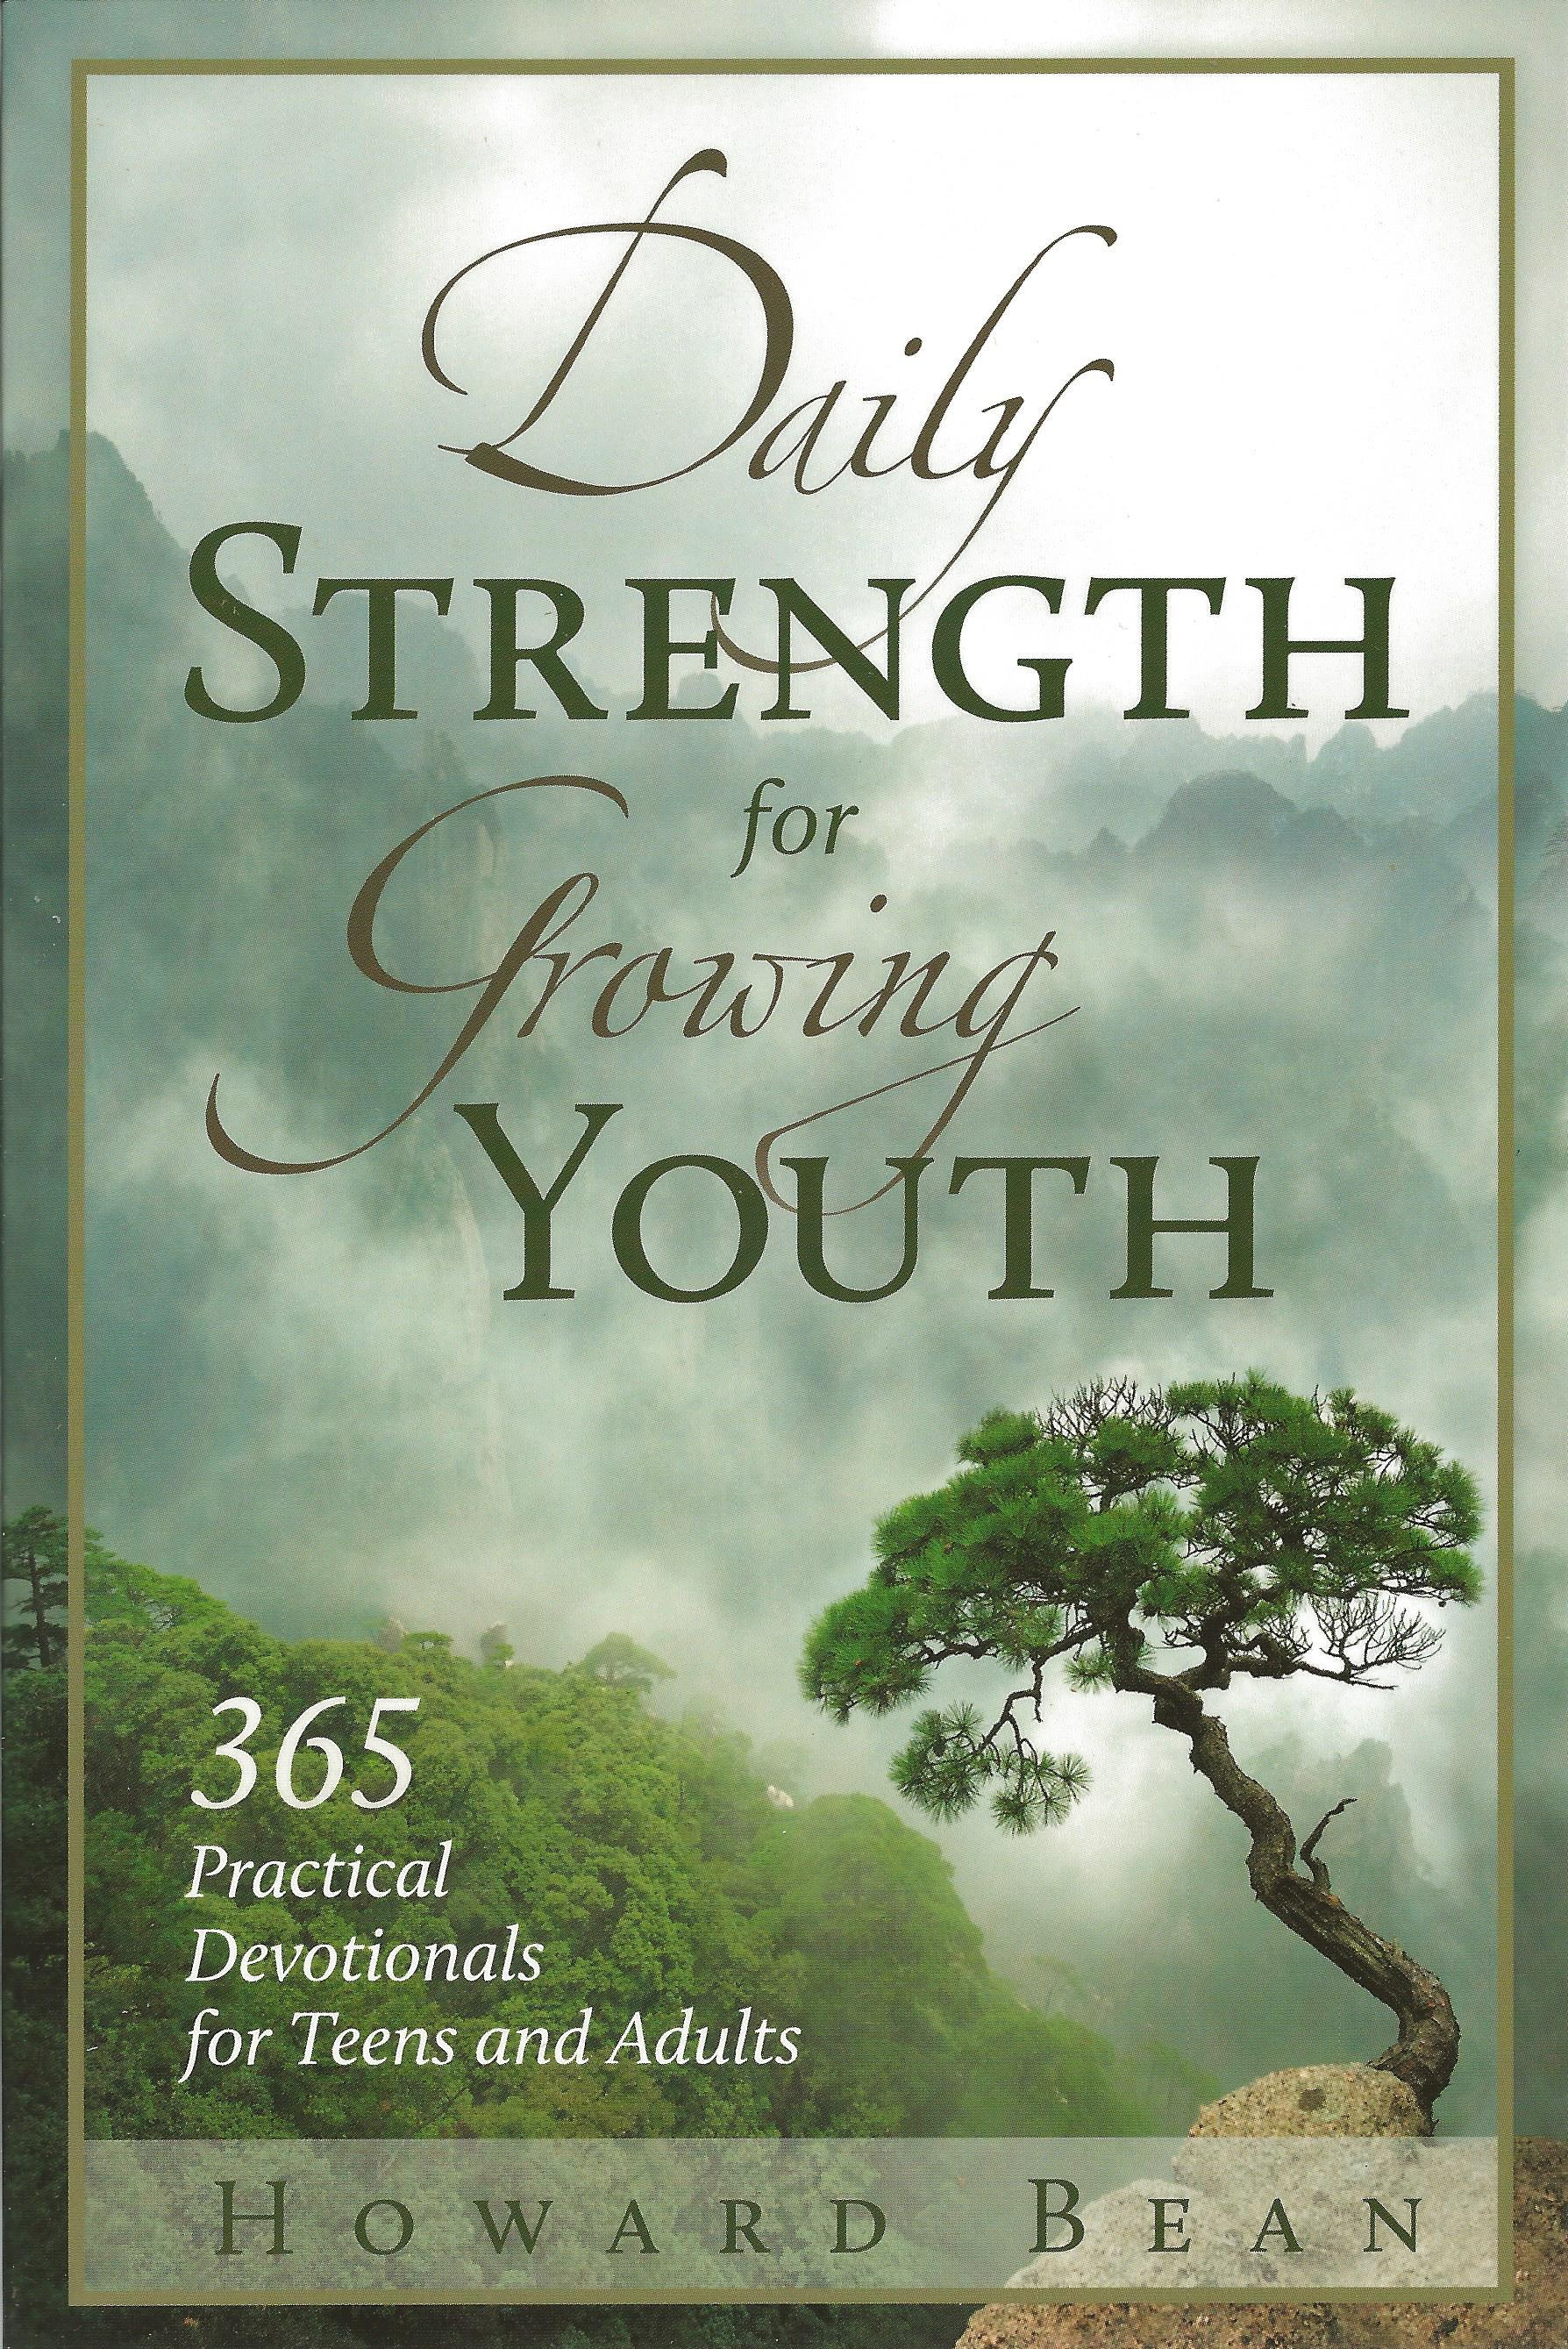 DAILY STRENGTH FOR GROWING YOUTH Howard Bean